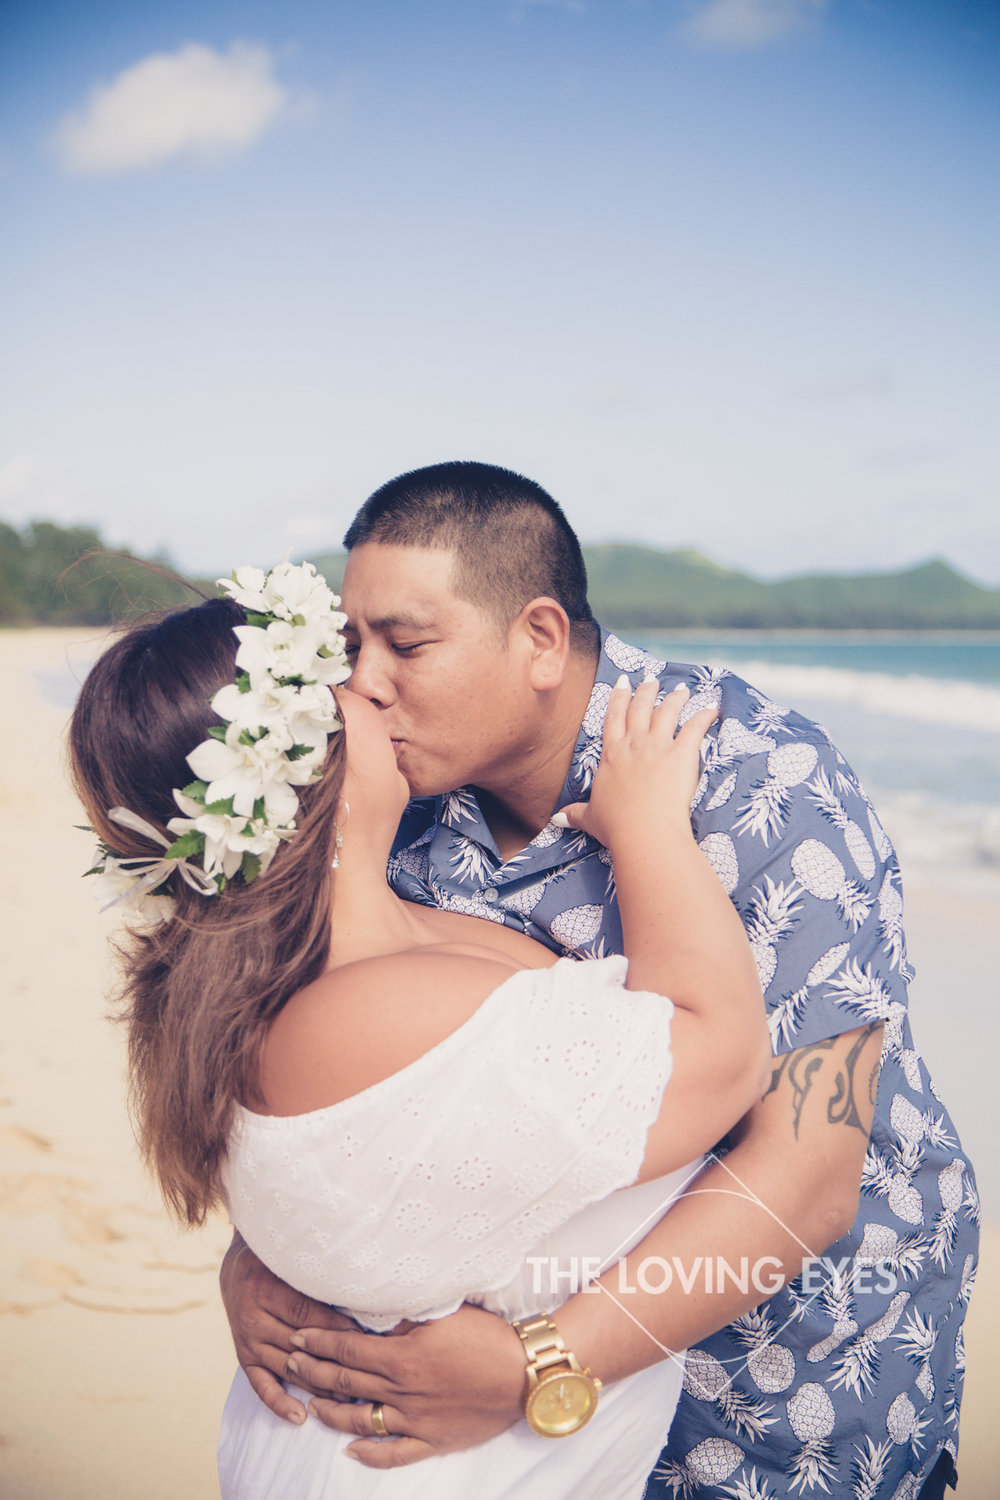 Engagement photo kiss on the beach in Waimanalo in Hawaii